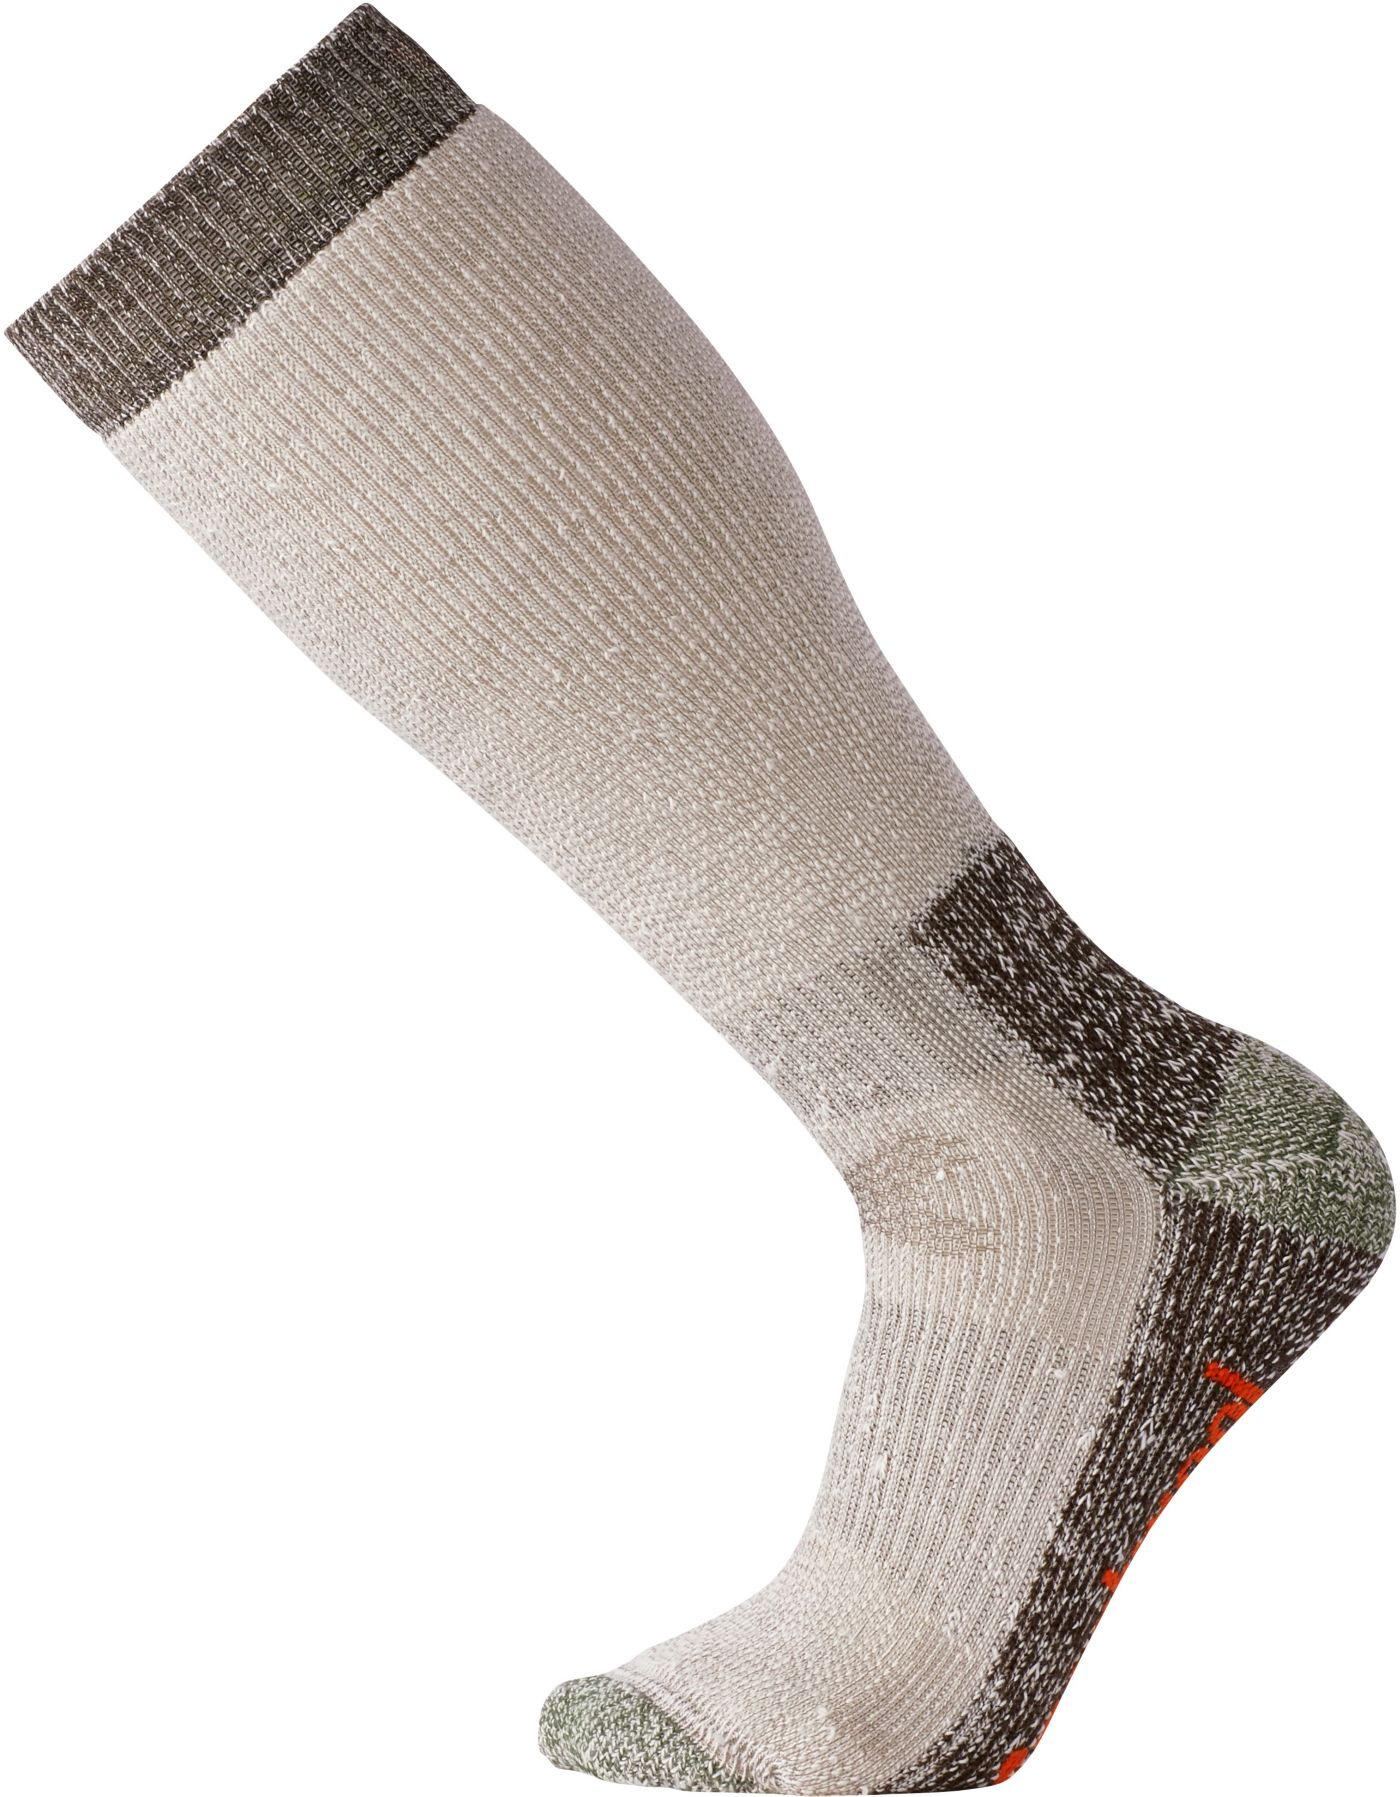 Smartwool Hunt Extra Heavy Over-The-Calf Socks